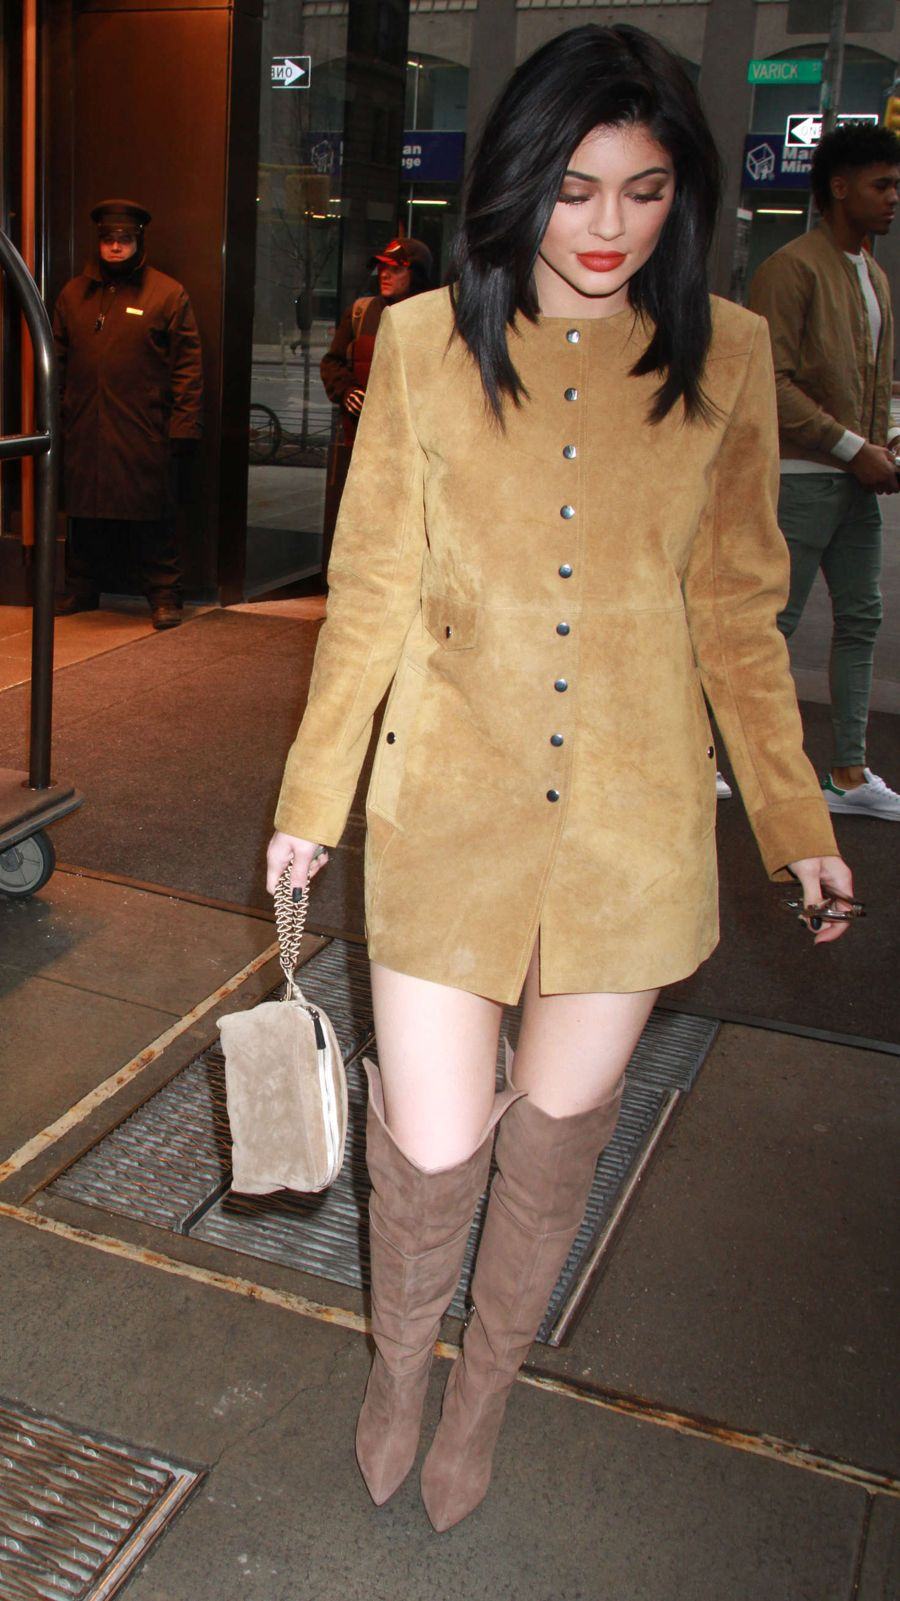 Kylie Jenner in Mini Dress out in New York